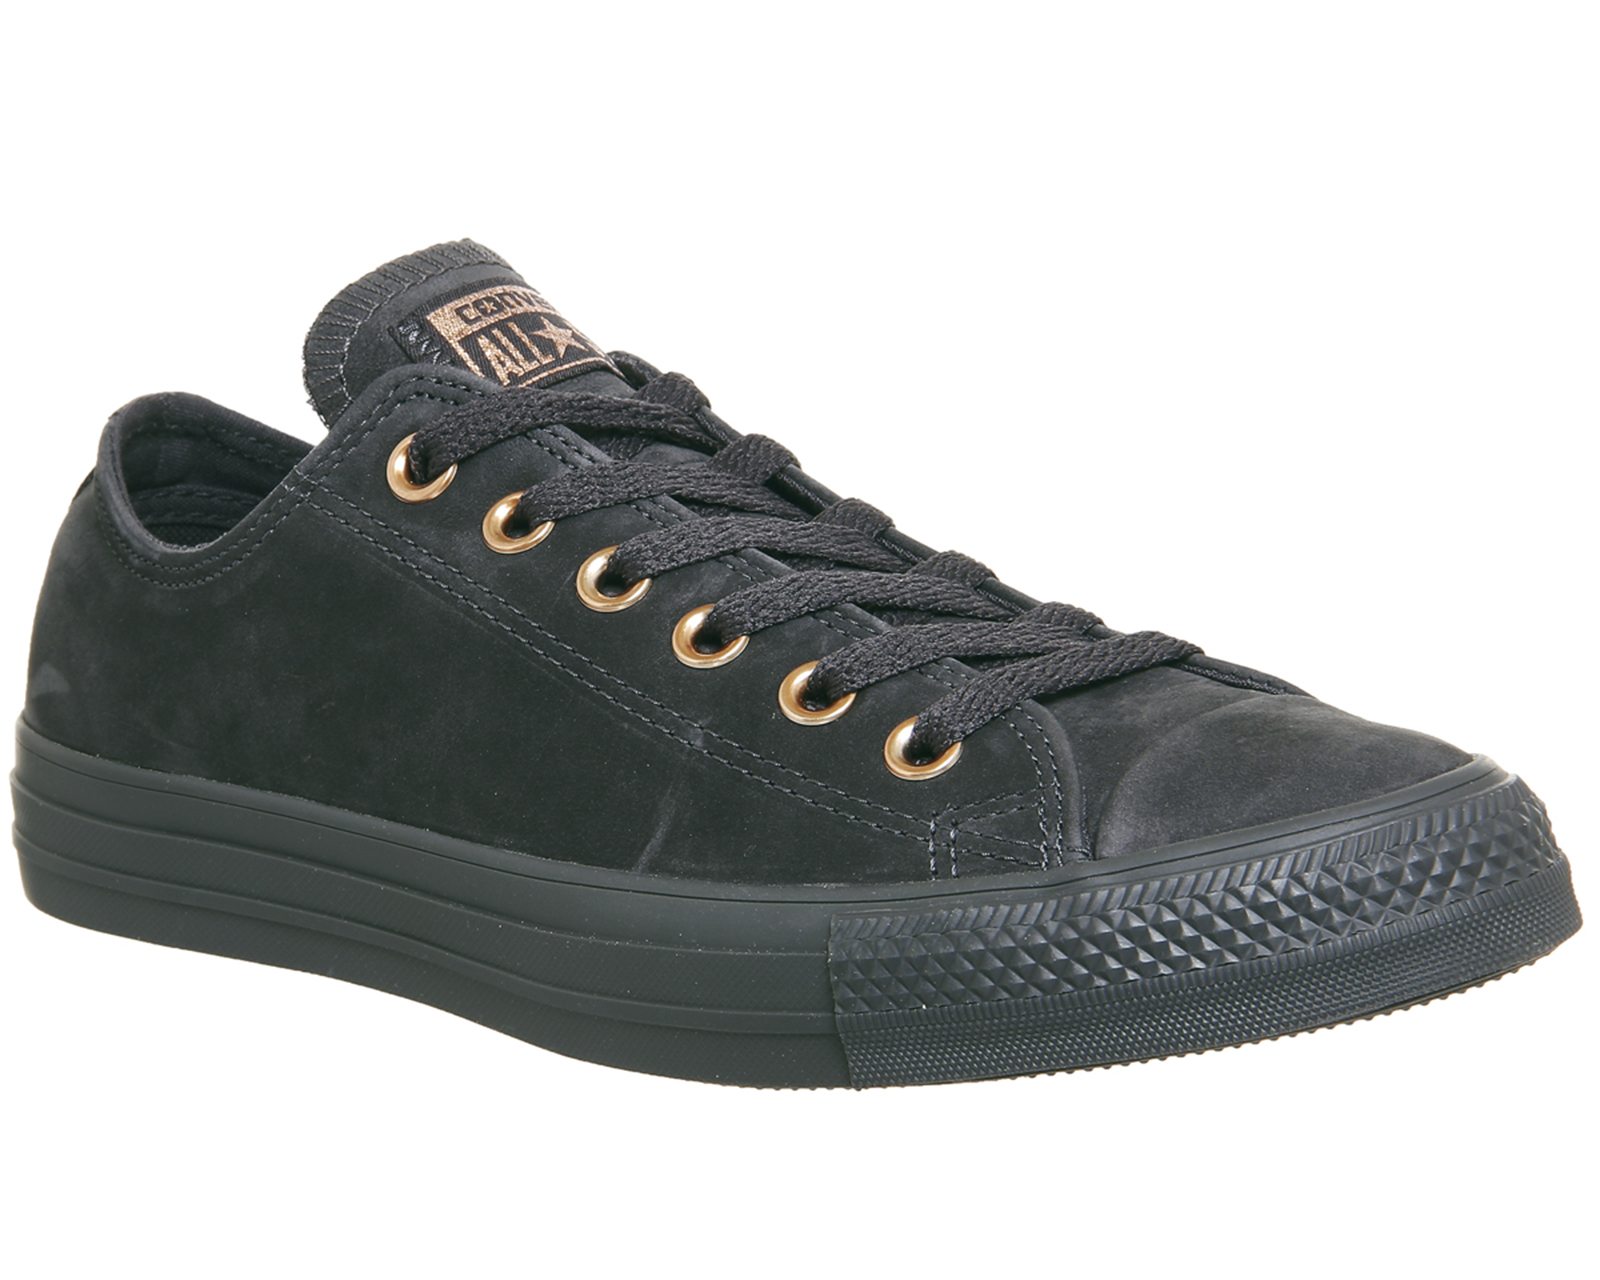 7d6962793105 Sentinel Womens Converse All Star Low Leather Almost Black Rose Gold  Trainers Shoes